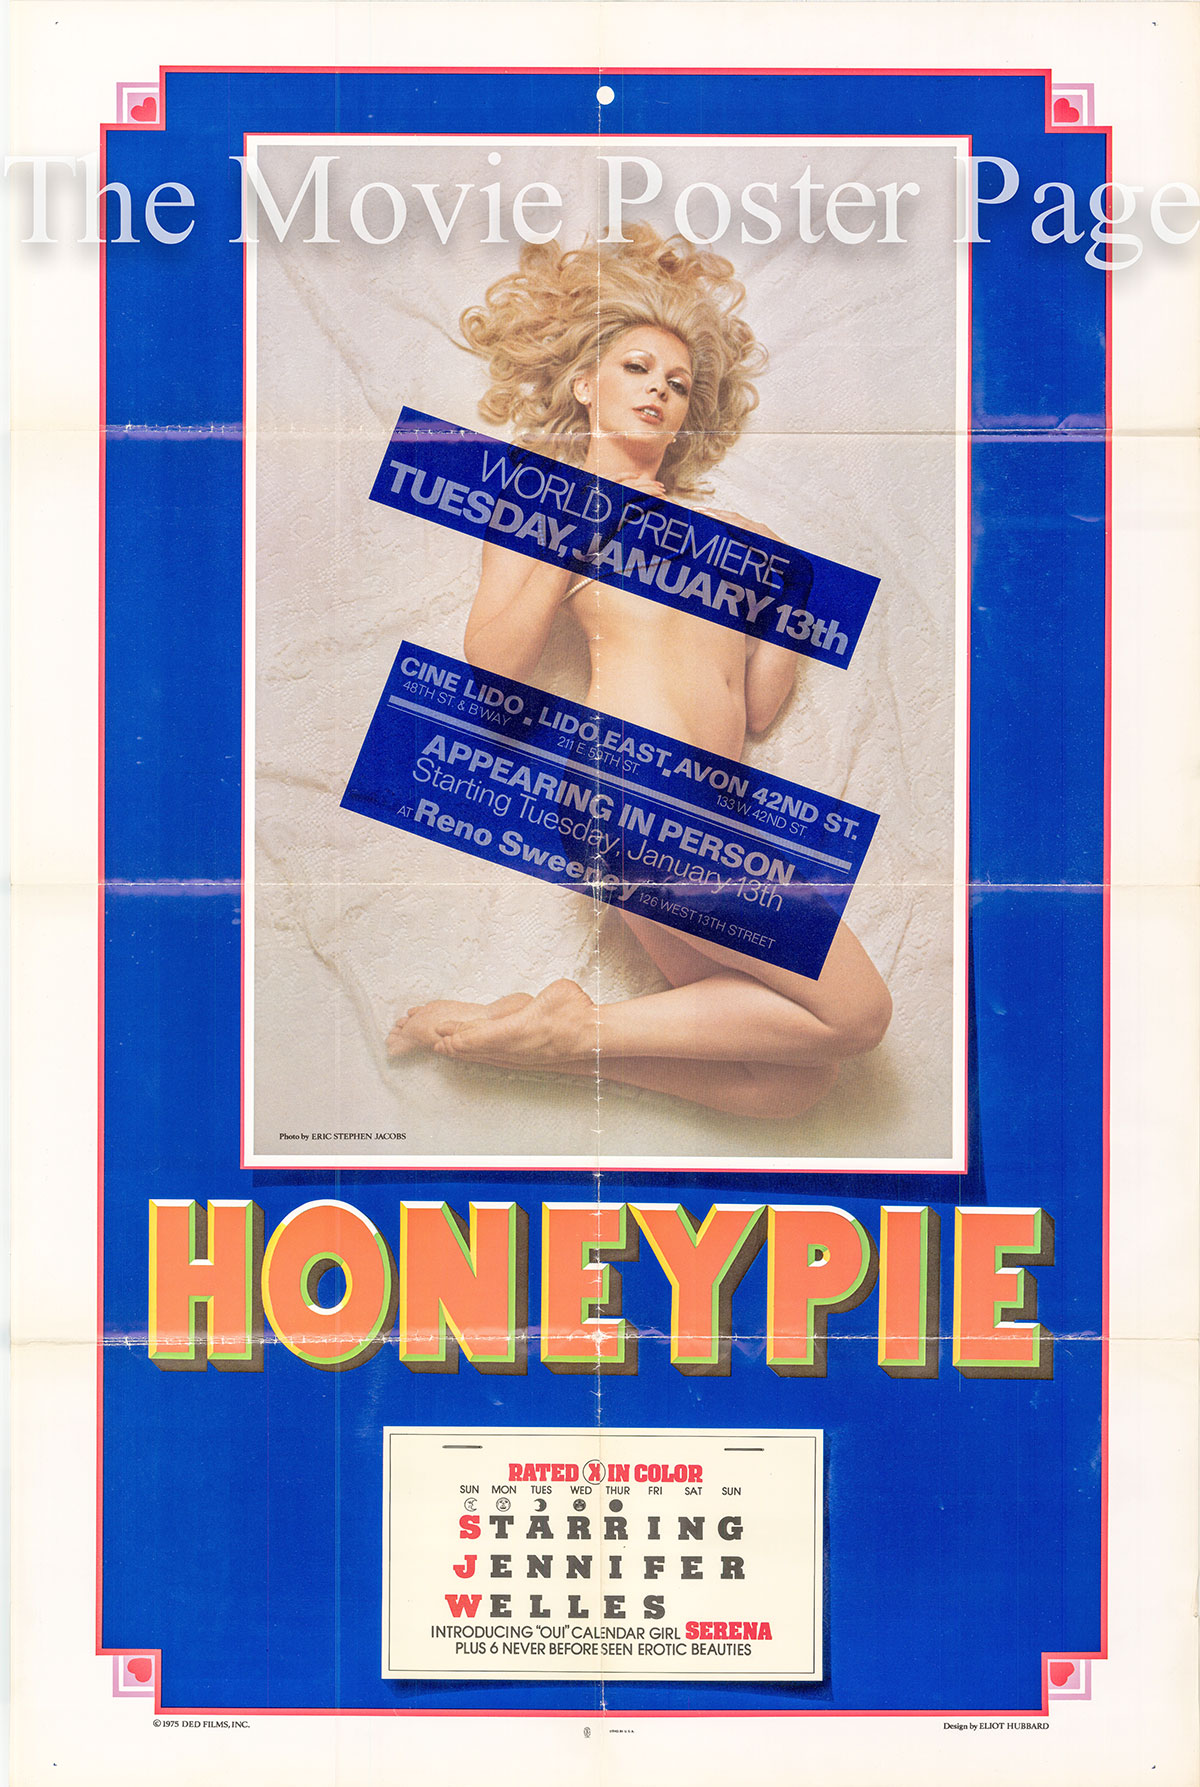 Pictured is a US advance one-sheet promotional poster for the 1976 Hans Johnson film Honeypie starring Jennifer Welles.